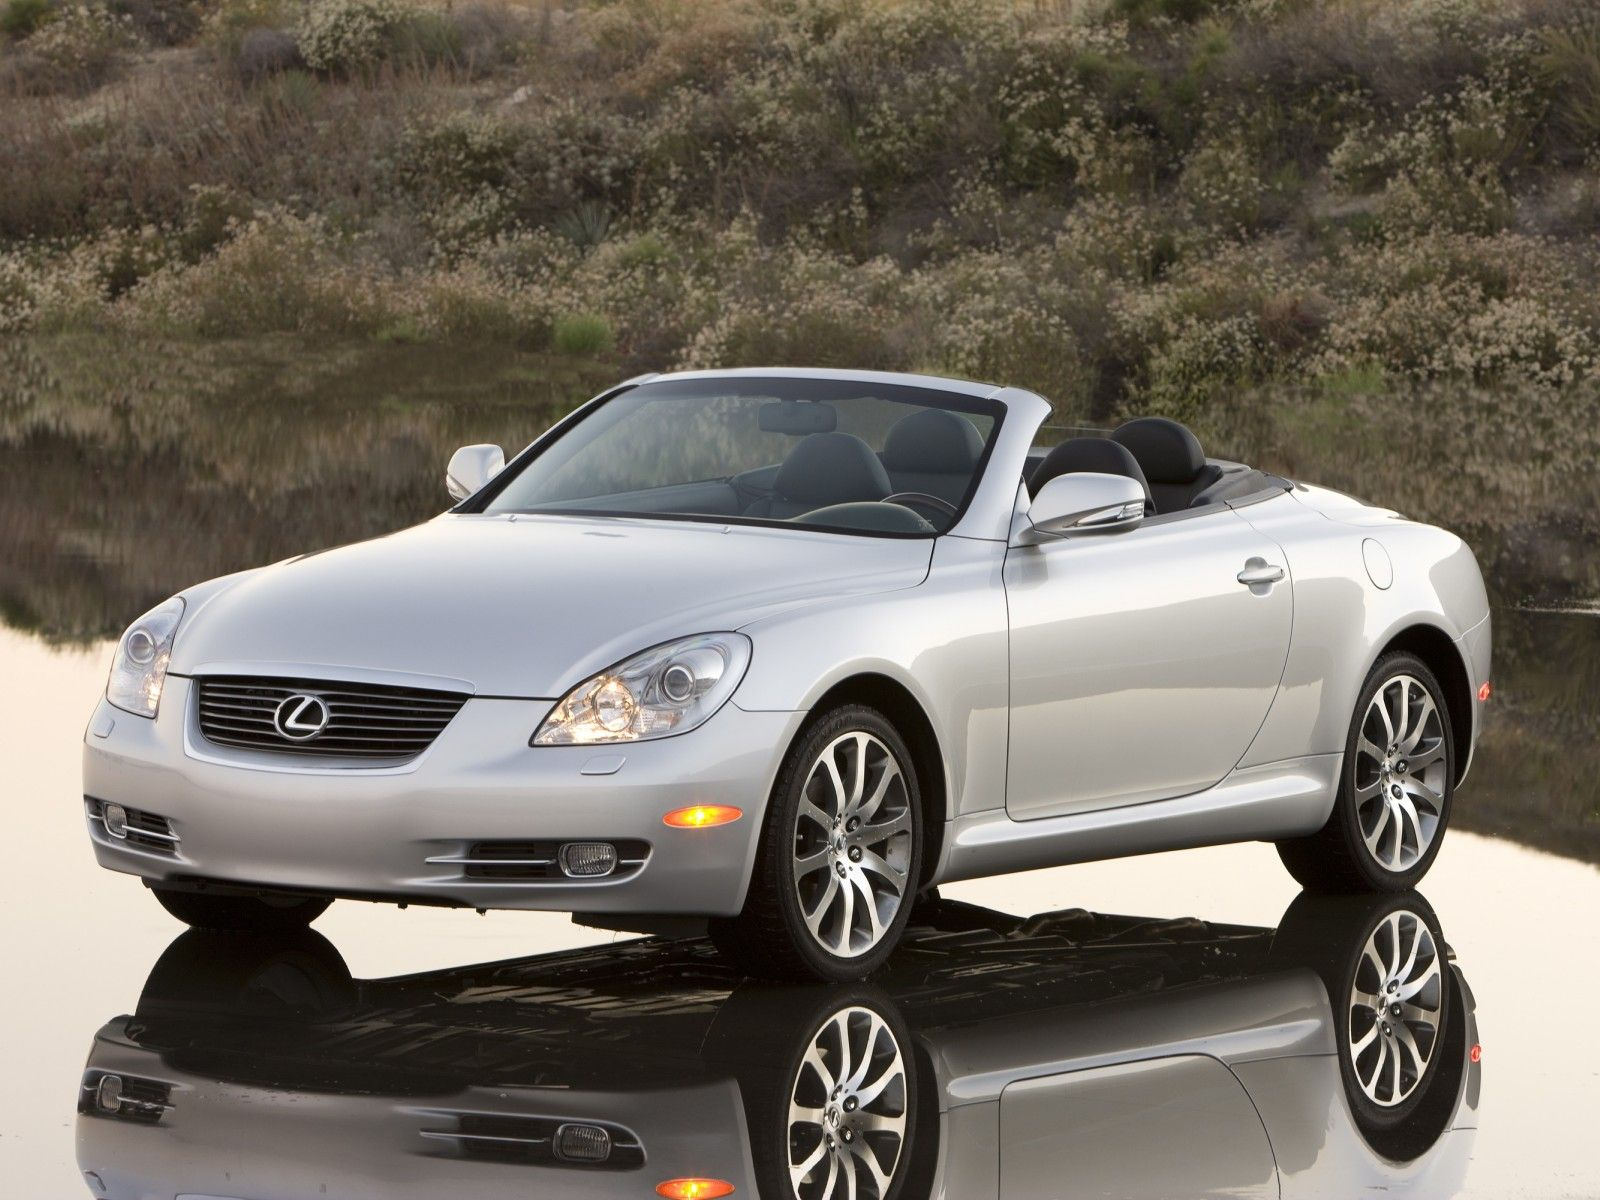 How to Choose a Car Insurance Company Lexus sc430, Lexus